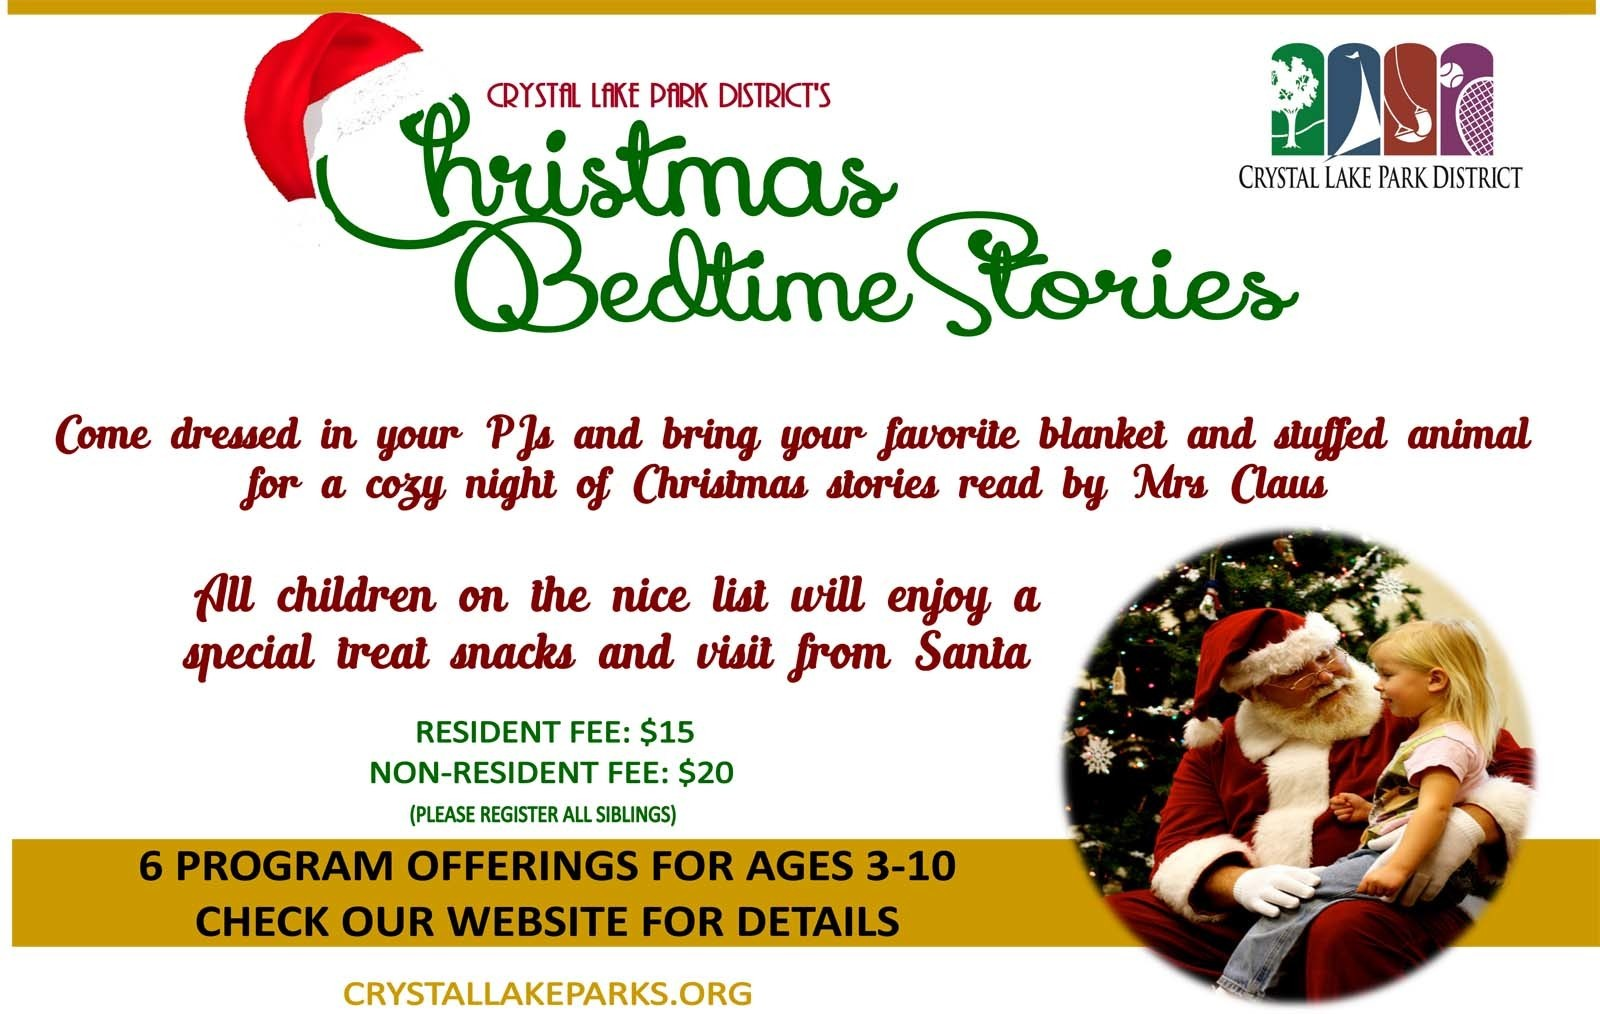 classic christmas bedtime stories for kids ages 3 10 a crystal lake park district holiday tradition barrington courier review - Christmas Bedtime Stories